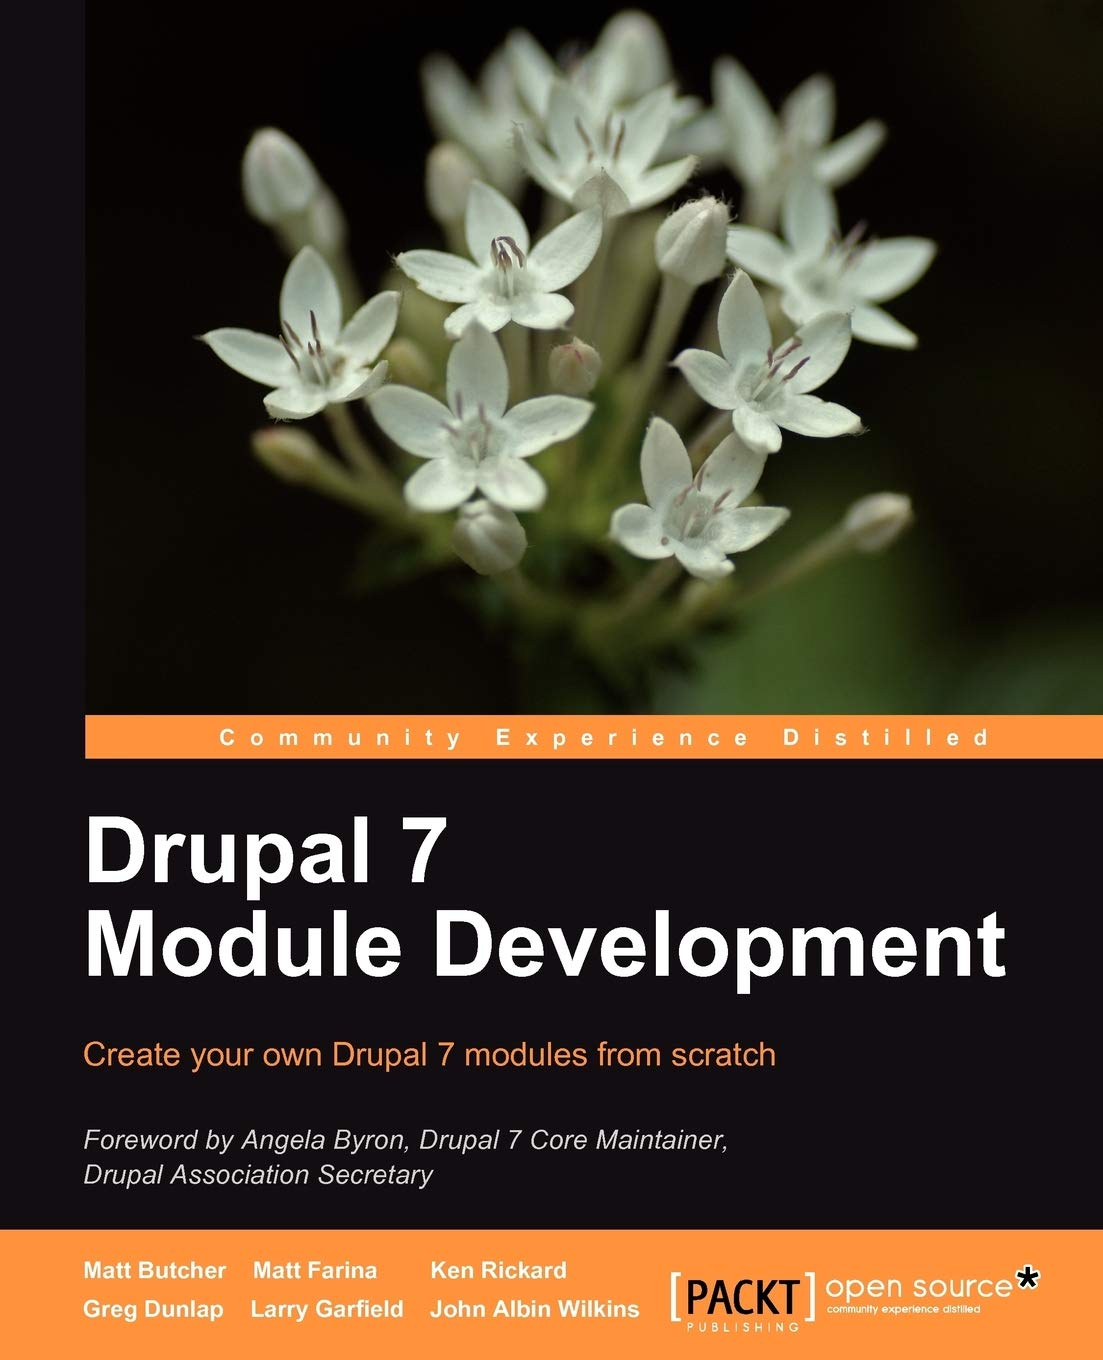 Drupal 7 Module Development Matt Butcher Larry Garfield John Albin Wilkins Matt Farina Ken Rickard Greg Dunlap 9781849511162 Amazon Com Books